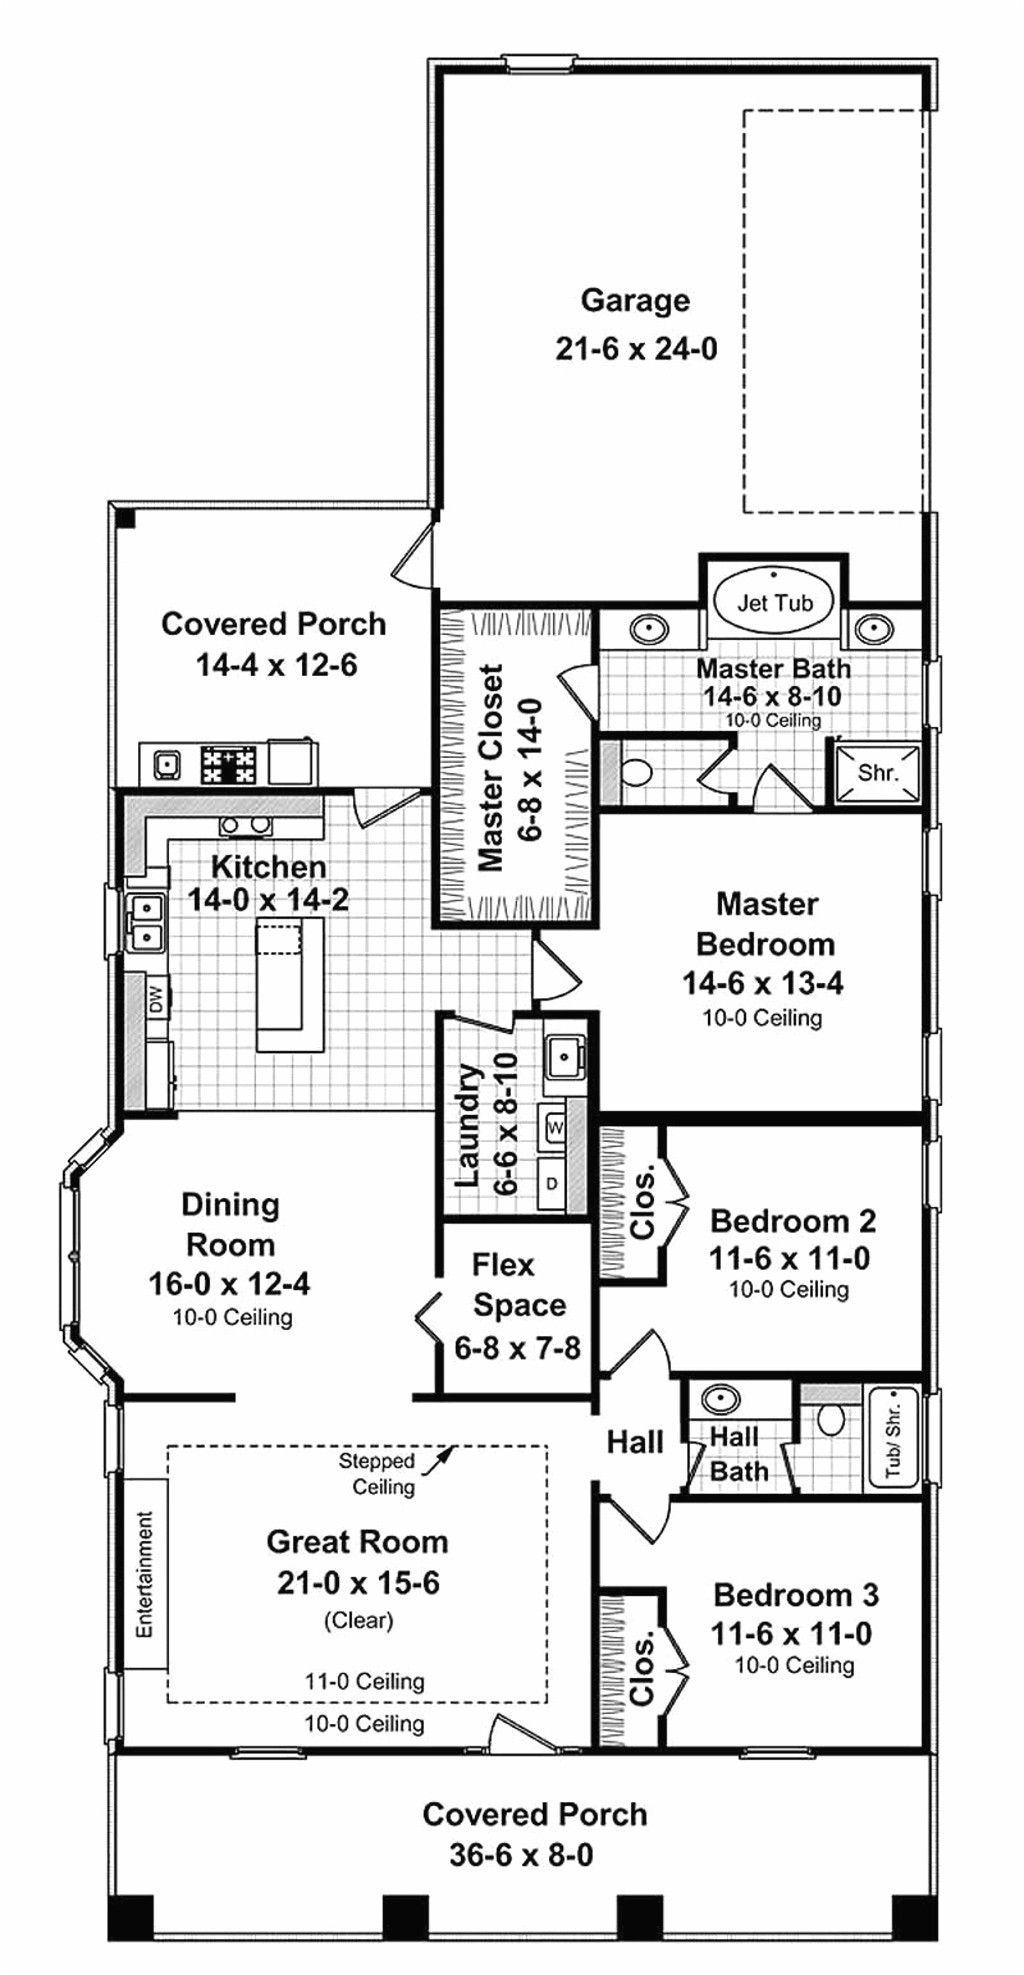 shed floor plans attractive 14x40 floor plans awesome 12 tiny house floor plans 16 x 40 2